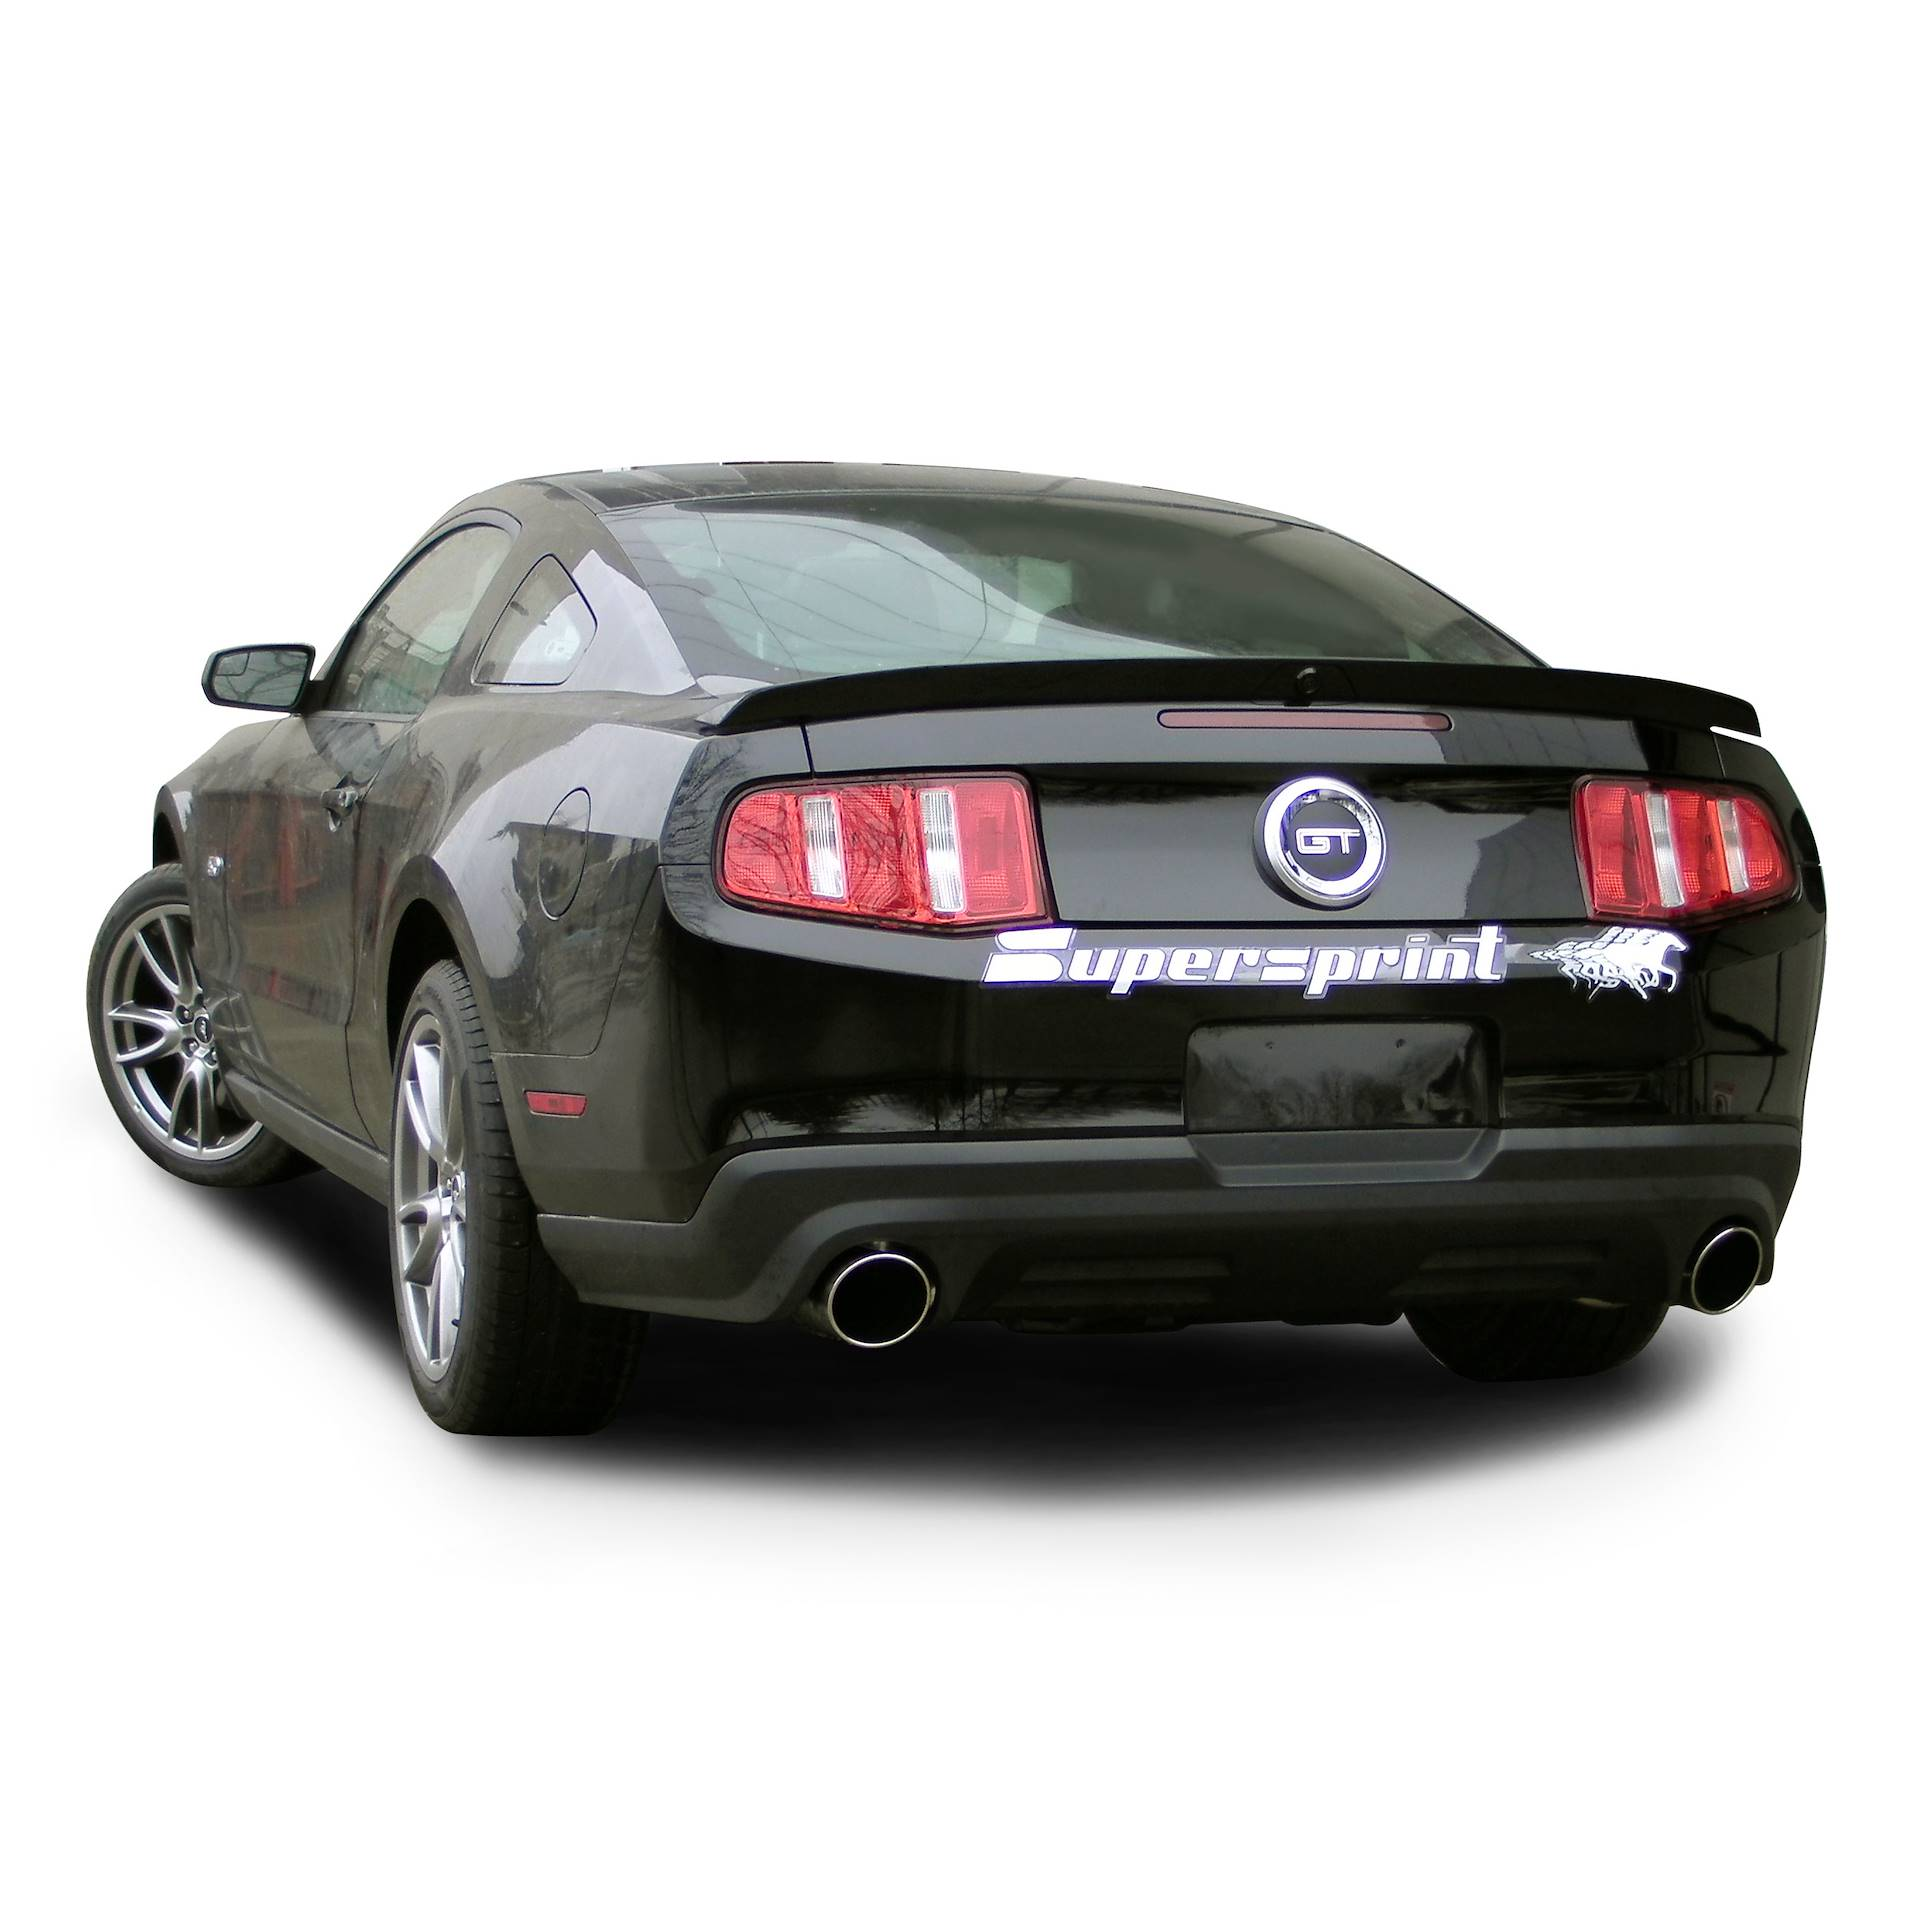 Ford Mustang - FORD MUSTANG 5.0i V8 (418PS) Coupè / Cabrio 2010 ->